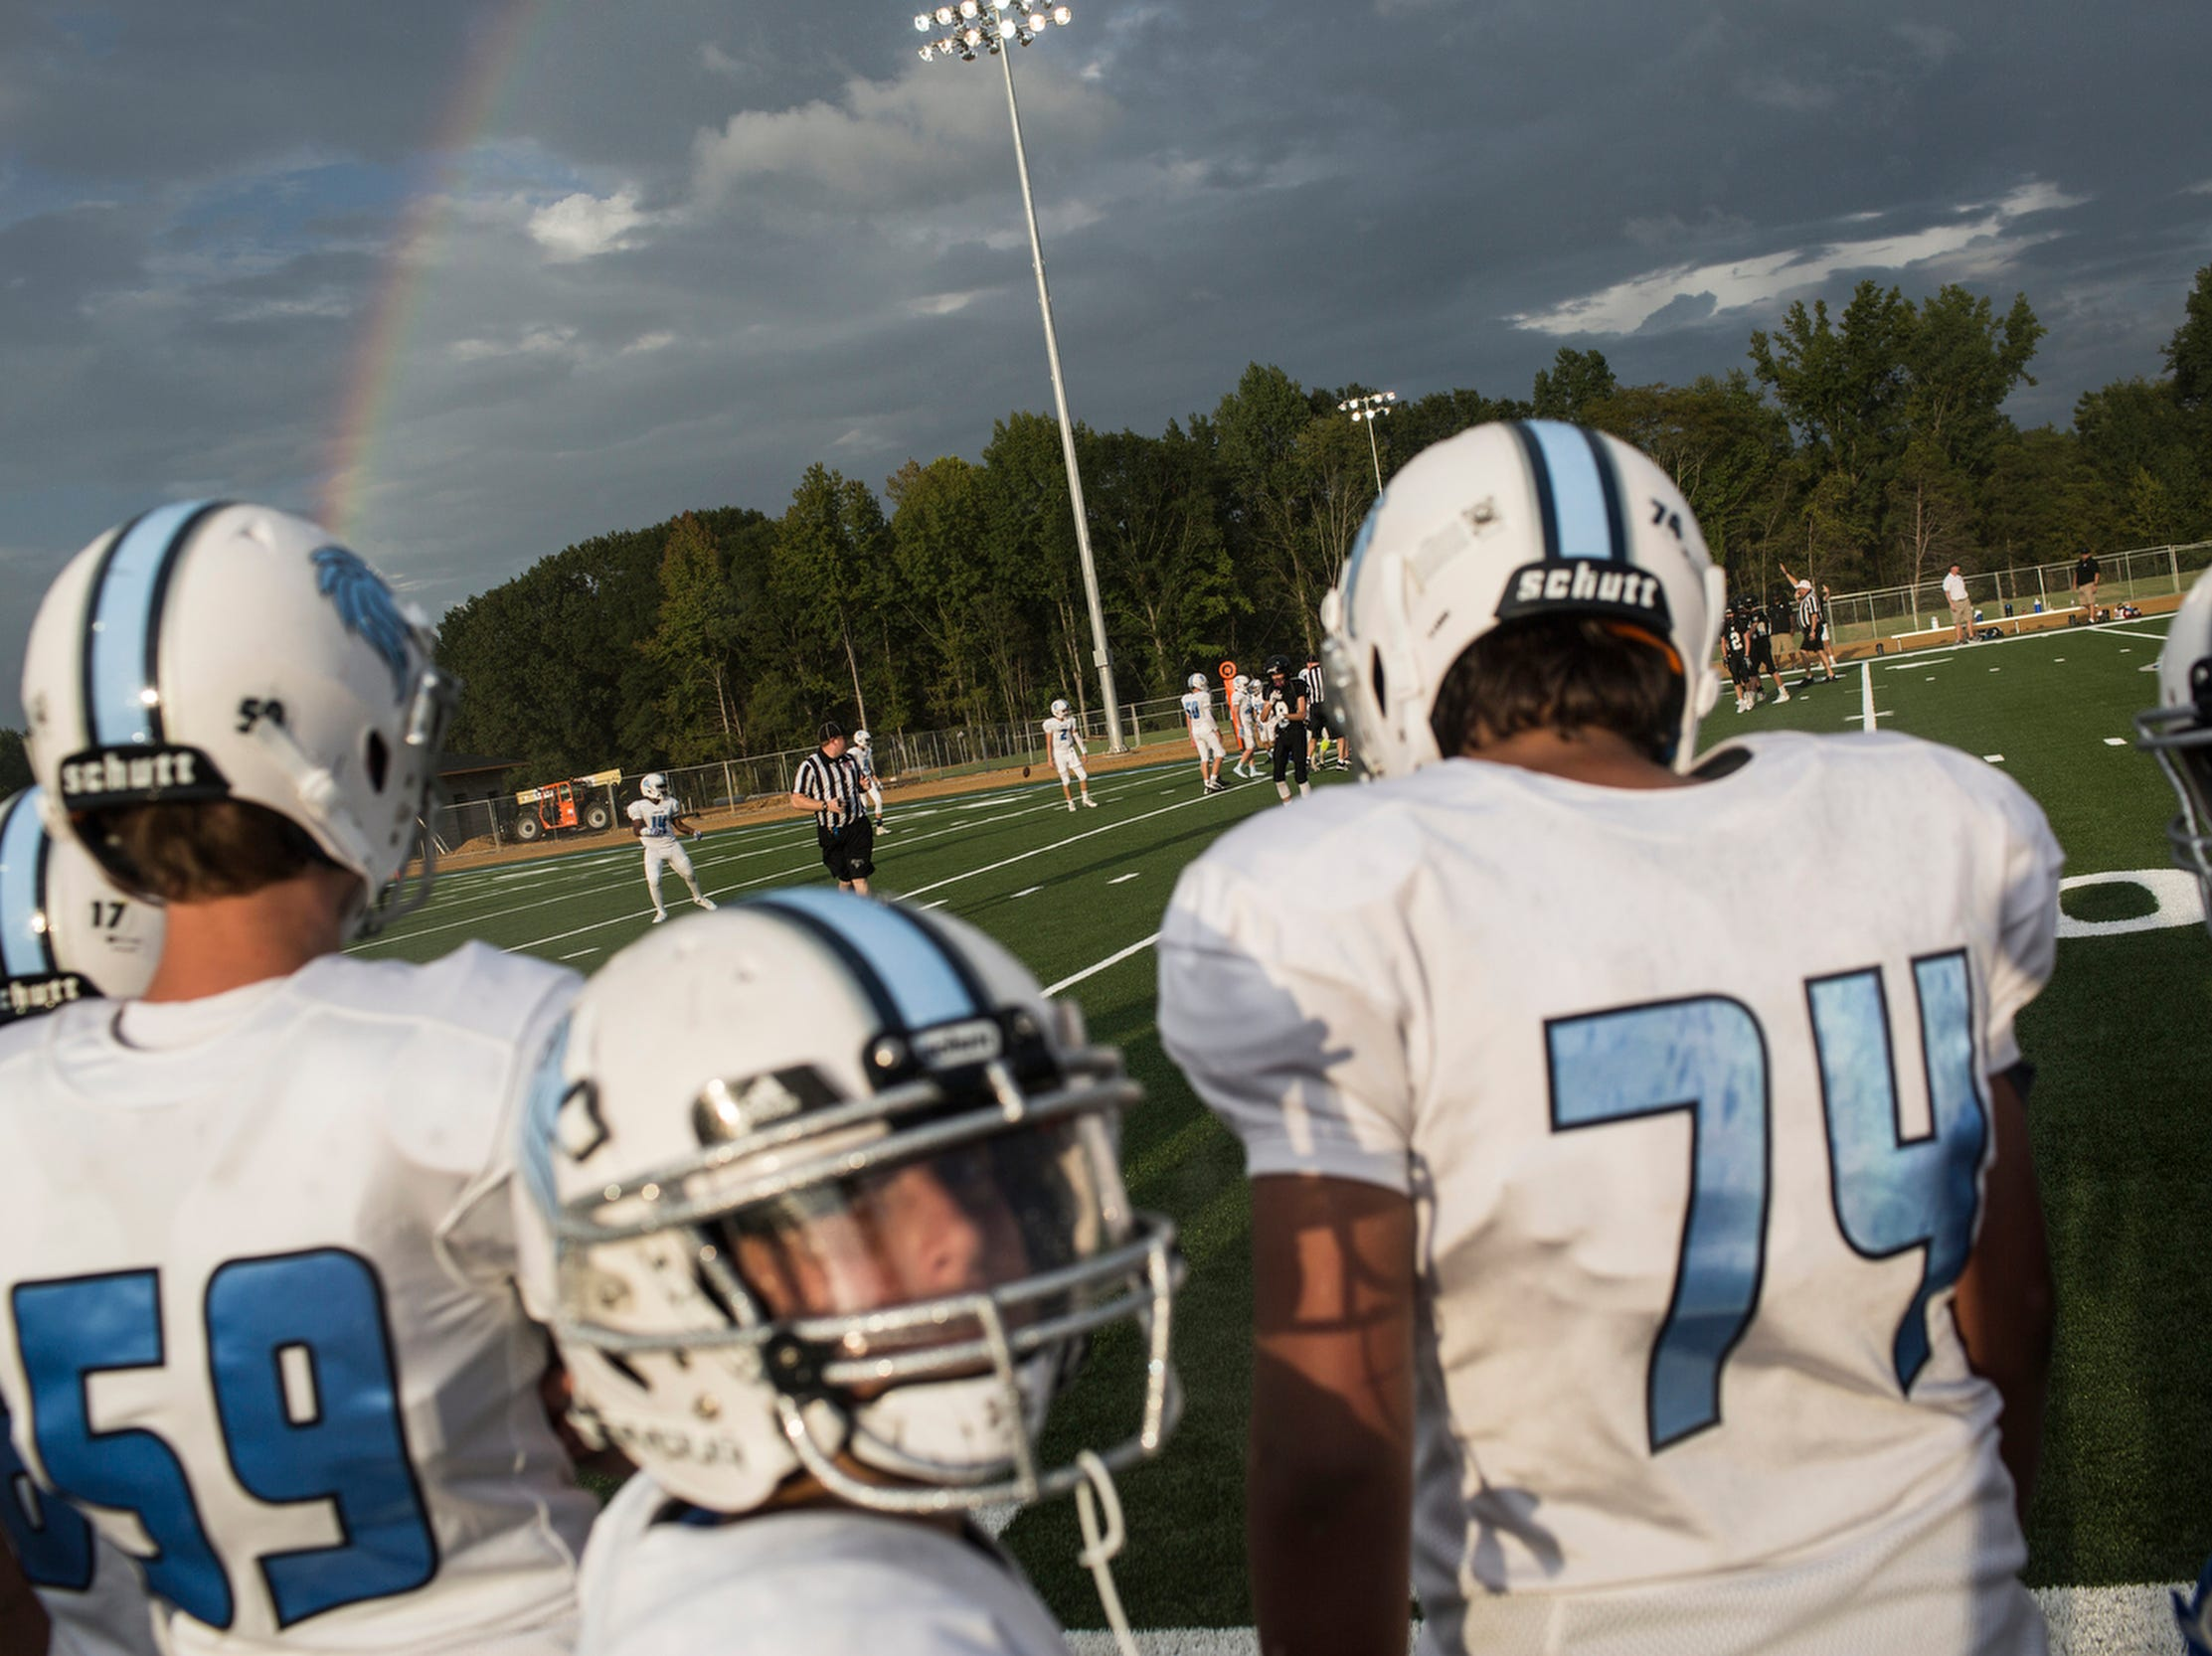 September 06 2018 - A rainbow is seen over the field during the first home game to take place at Lakeland Middle School. Until the start of this game, all of Lakeland Middle School's football games were played away.